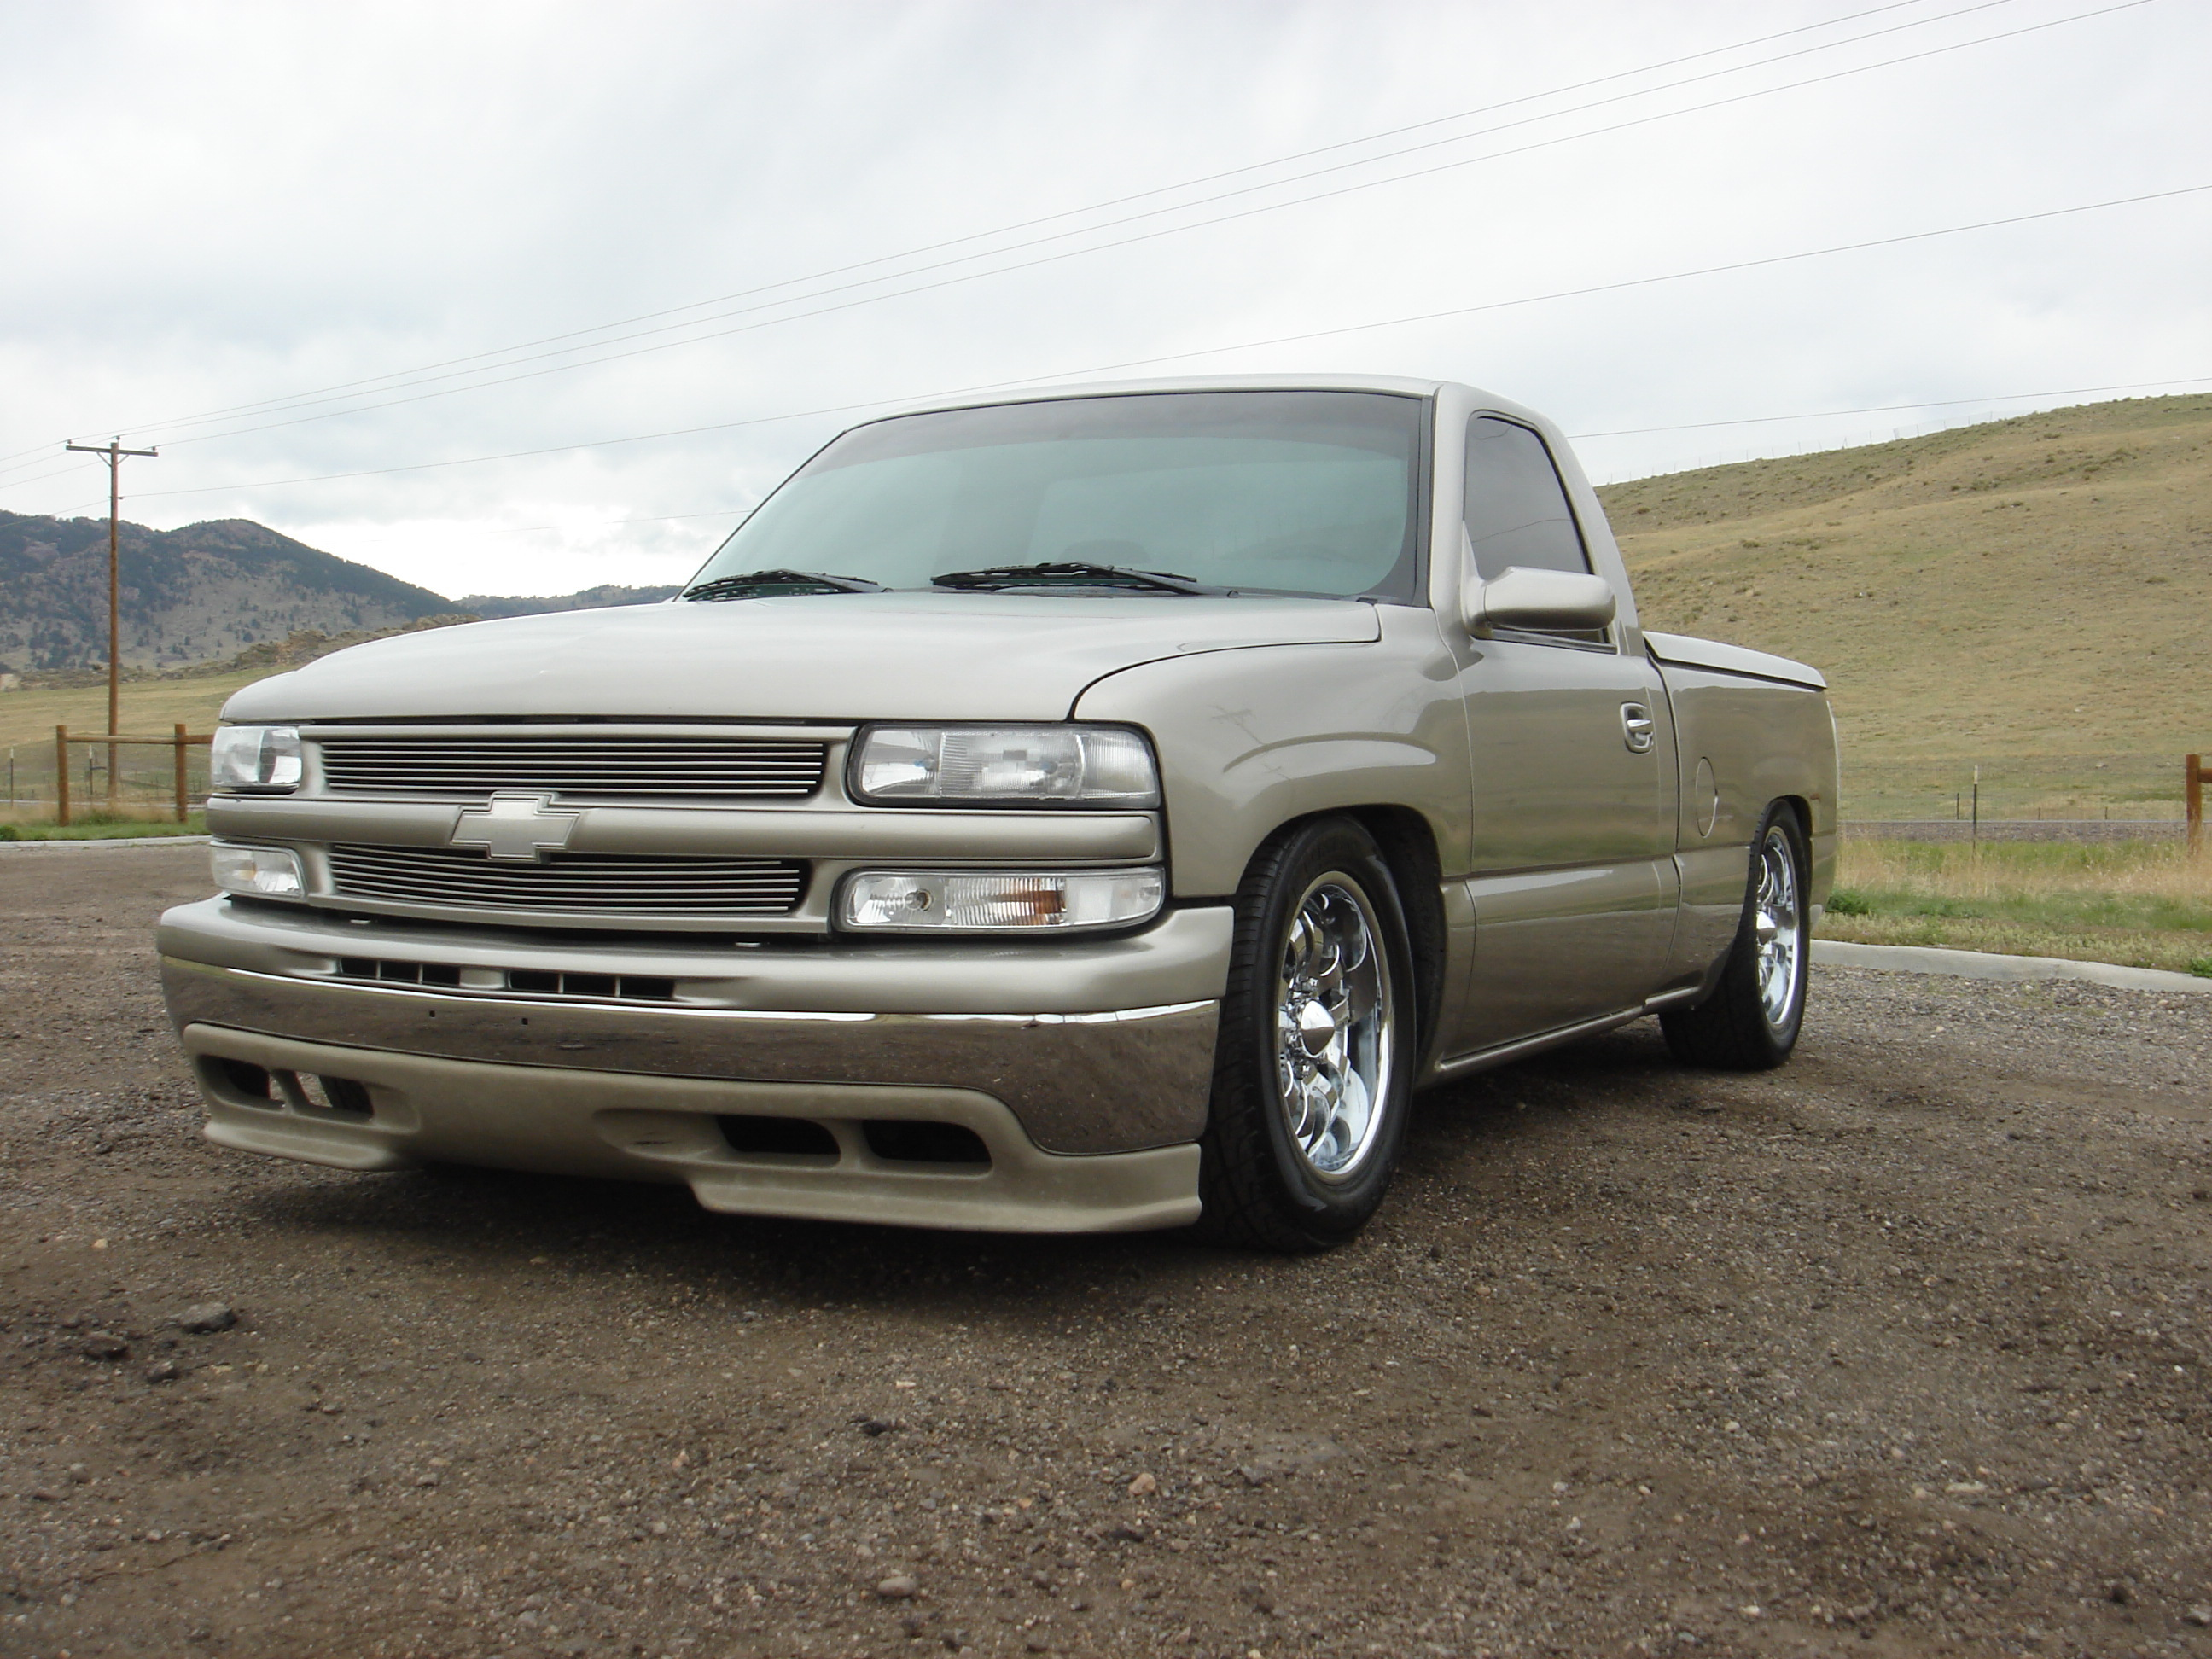 shiftysooner 2000 chevrolet silverado 1500 regular cab specs photos modification info at cardomain. Black Bedroom Furniture Sets. Home Design Ideas